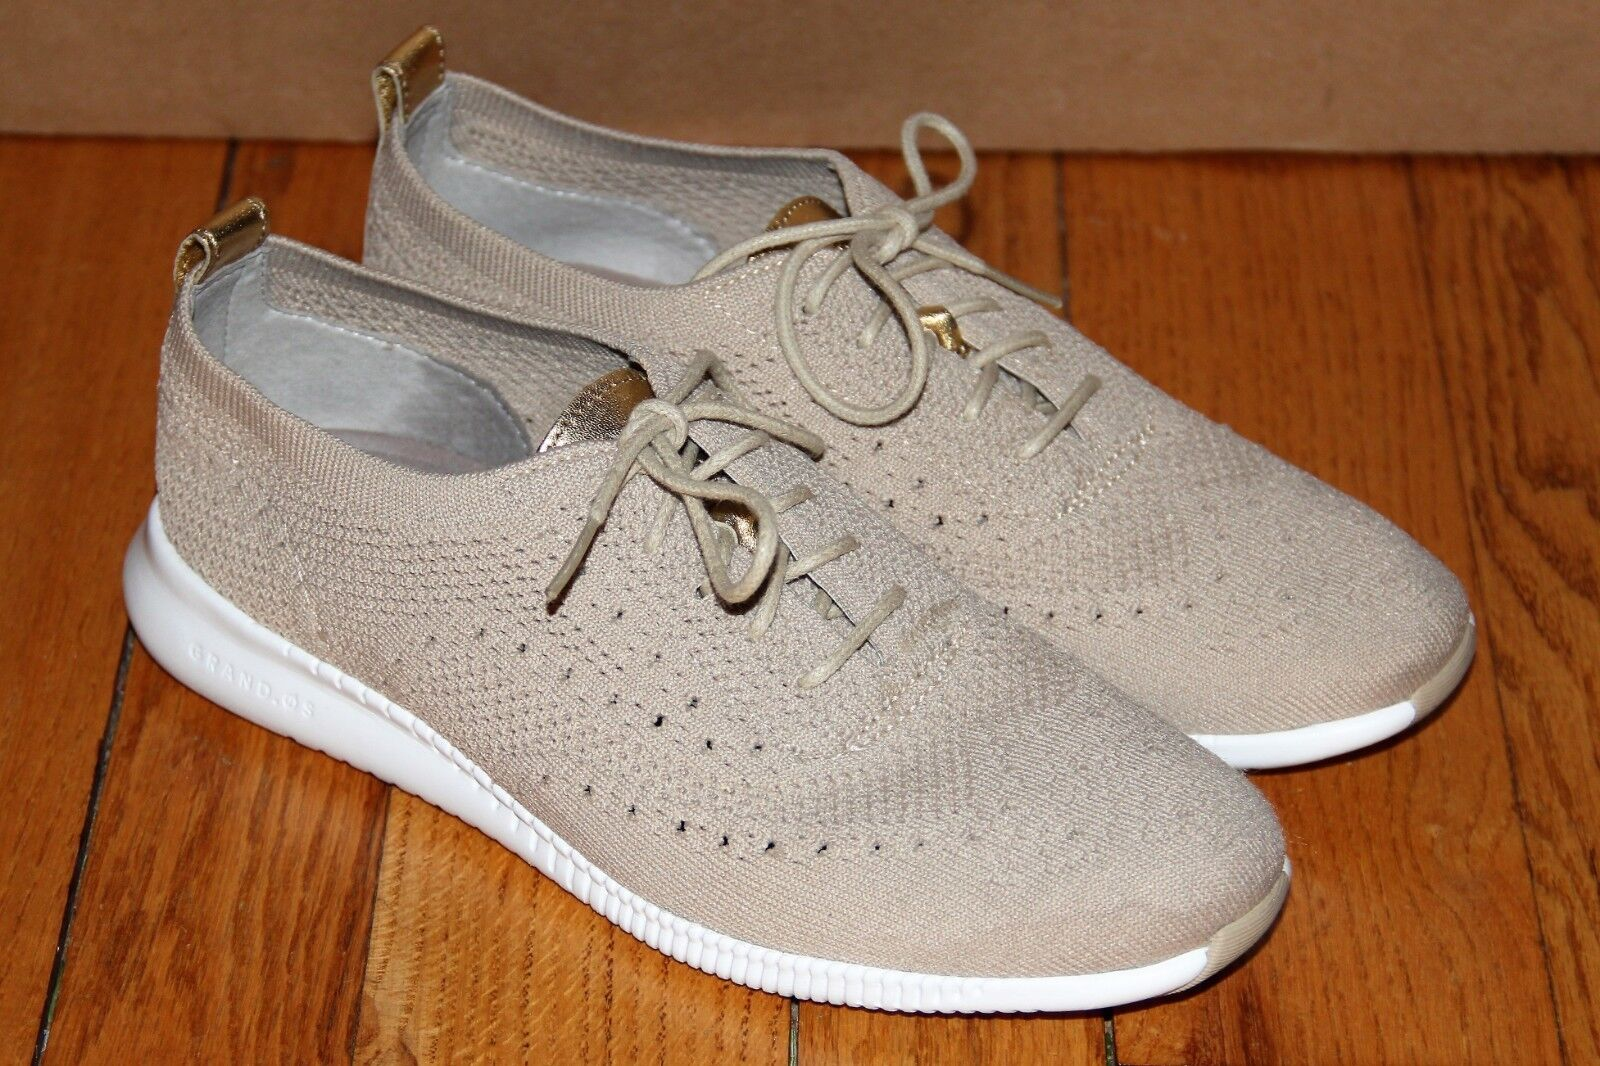 5a19eaf61cee ZEROGRAND Stitchlite Oxfords EXCELLENT 7.5M Sneakers Wingtip nzuzuq3573-new  shoes